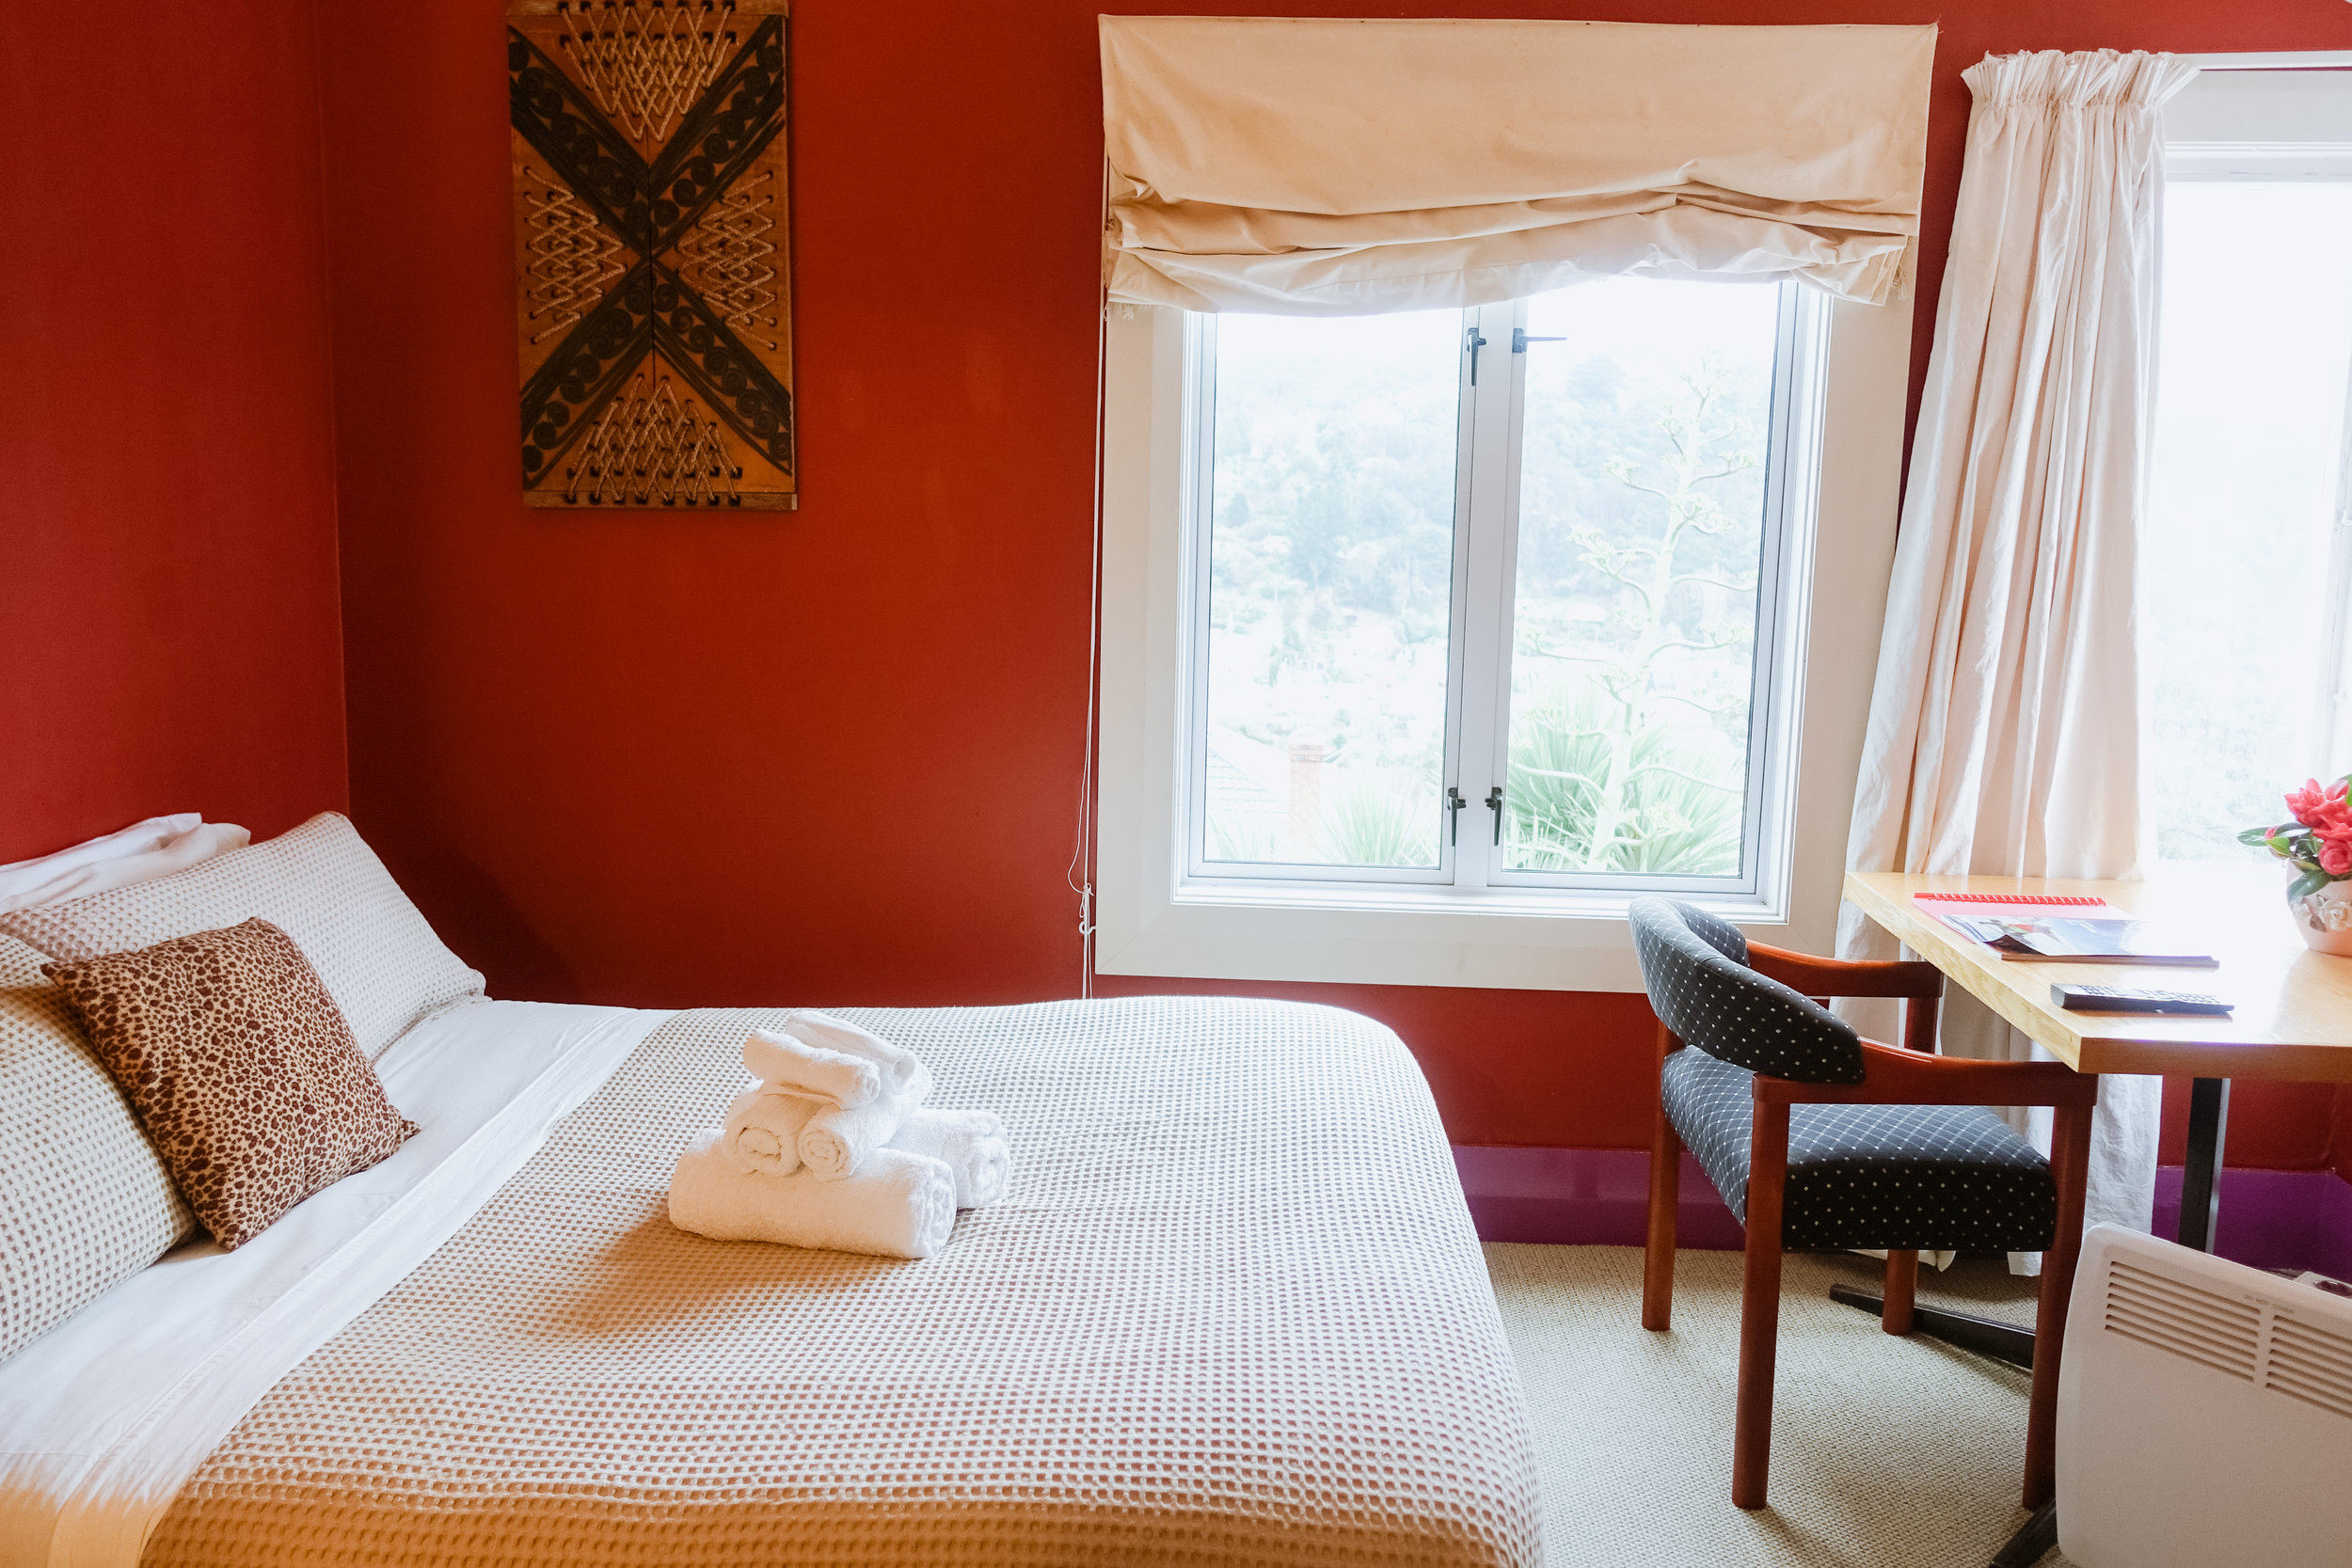 One of the Double + Single bed rooms